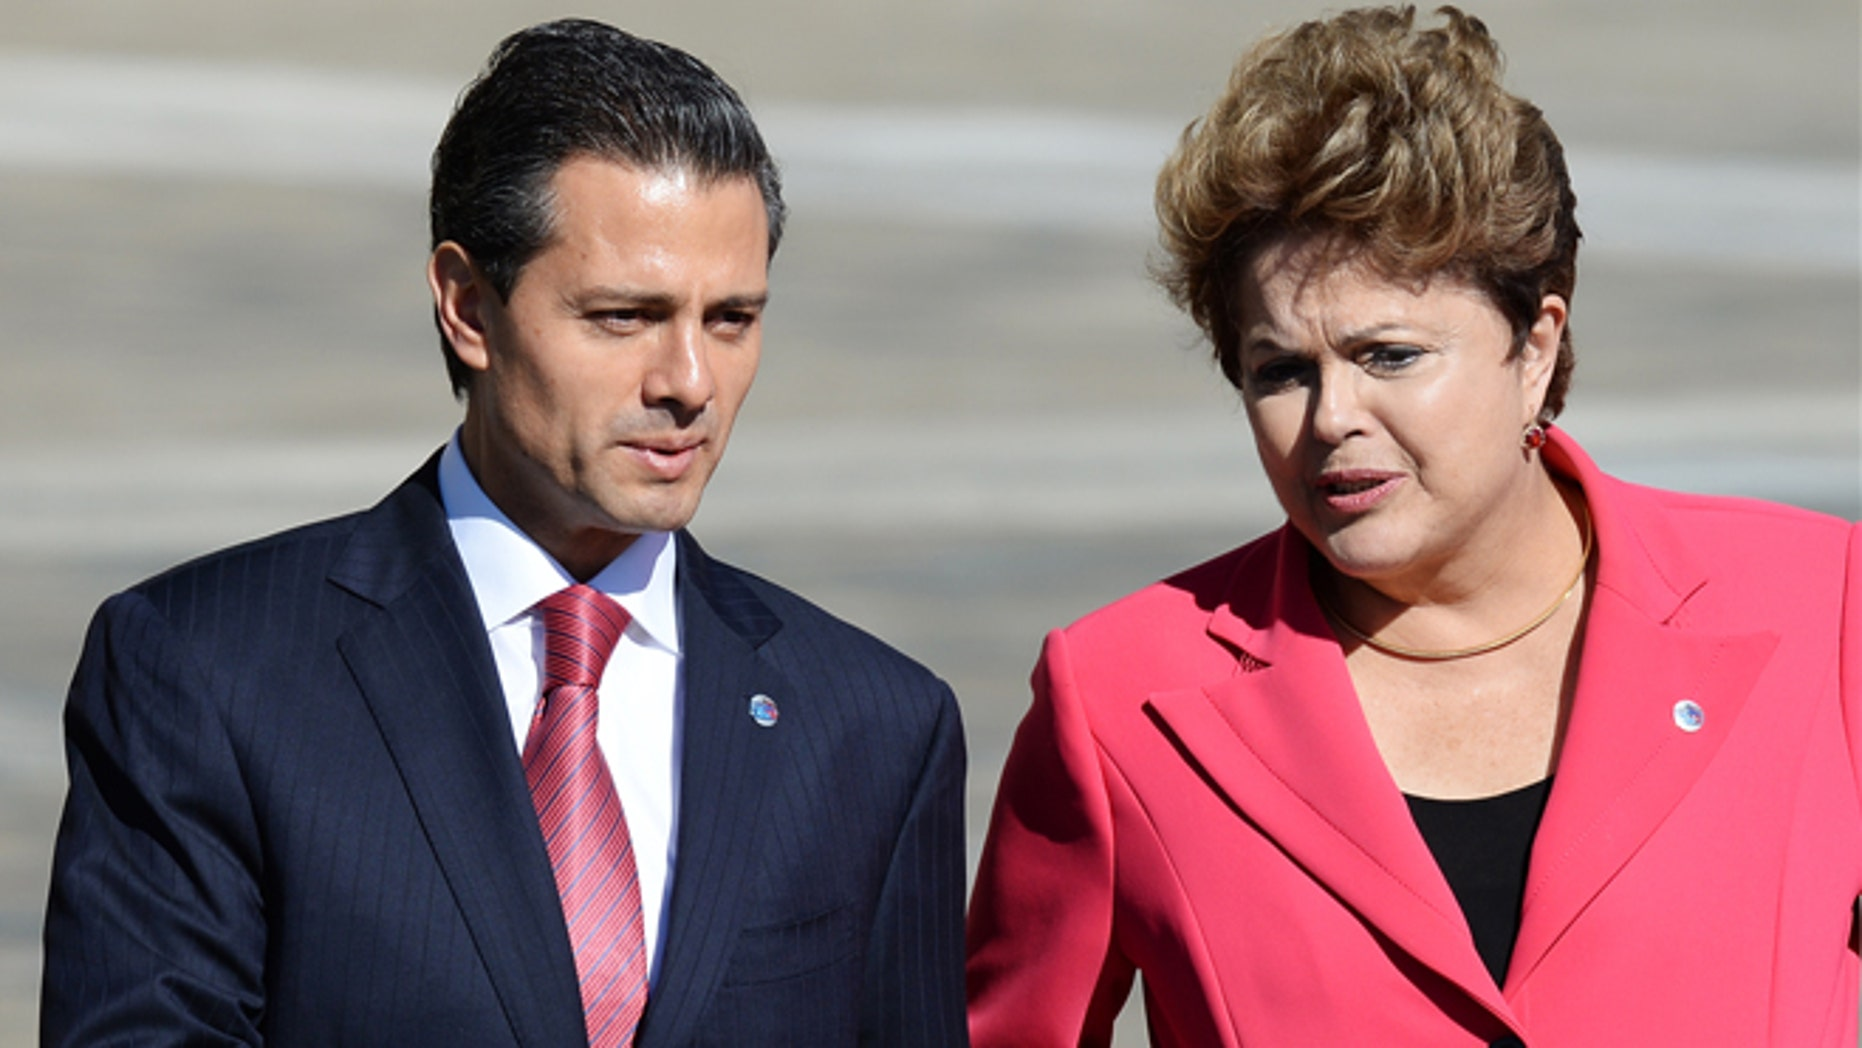 President of Mexico Enrique Peña Nieto and President of Brazil, Dilma Rousseff  during the G20 summit on September 6, 2013 in St. Petersburg, Russia.